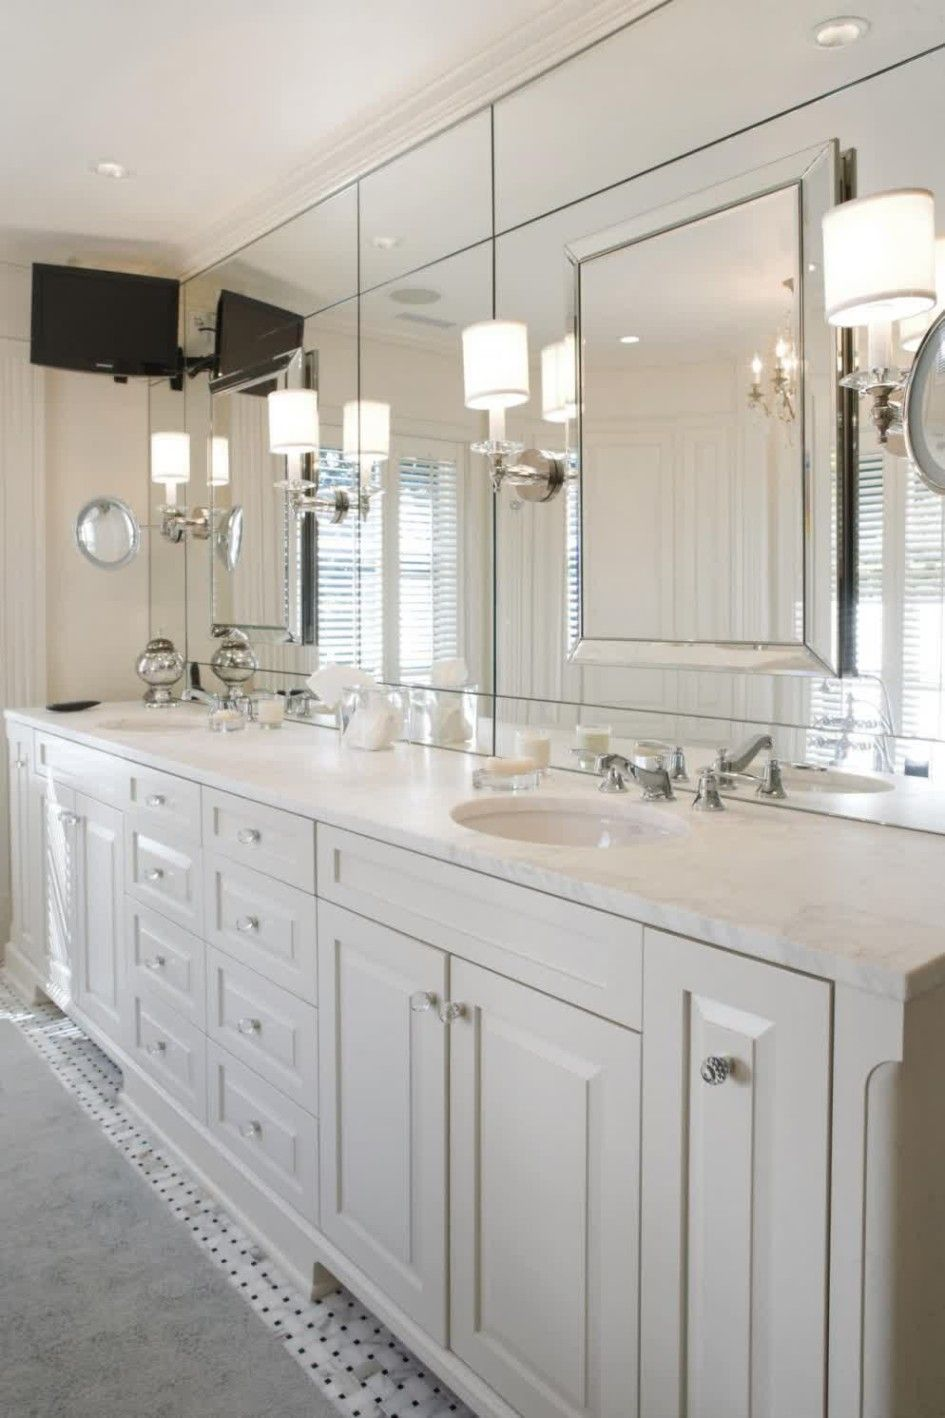 Wall Sconces Above Bathroom Mirror : Bathroom Ideas, Modern Bathroom Wall Sconces With Large Frameless Mirror Above Double Sink ...